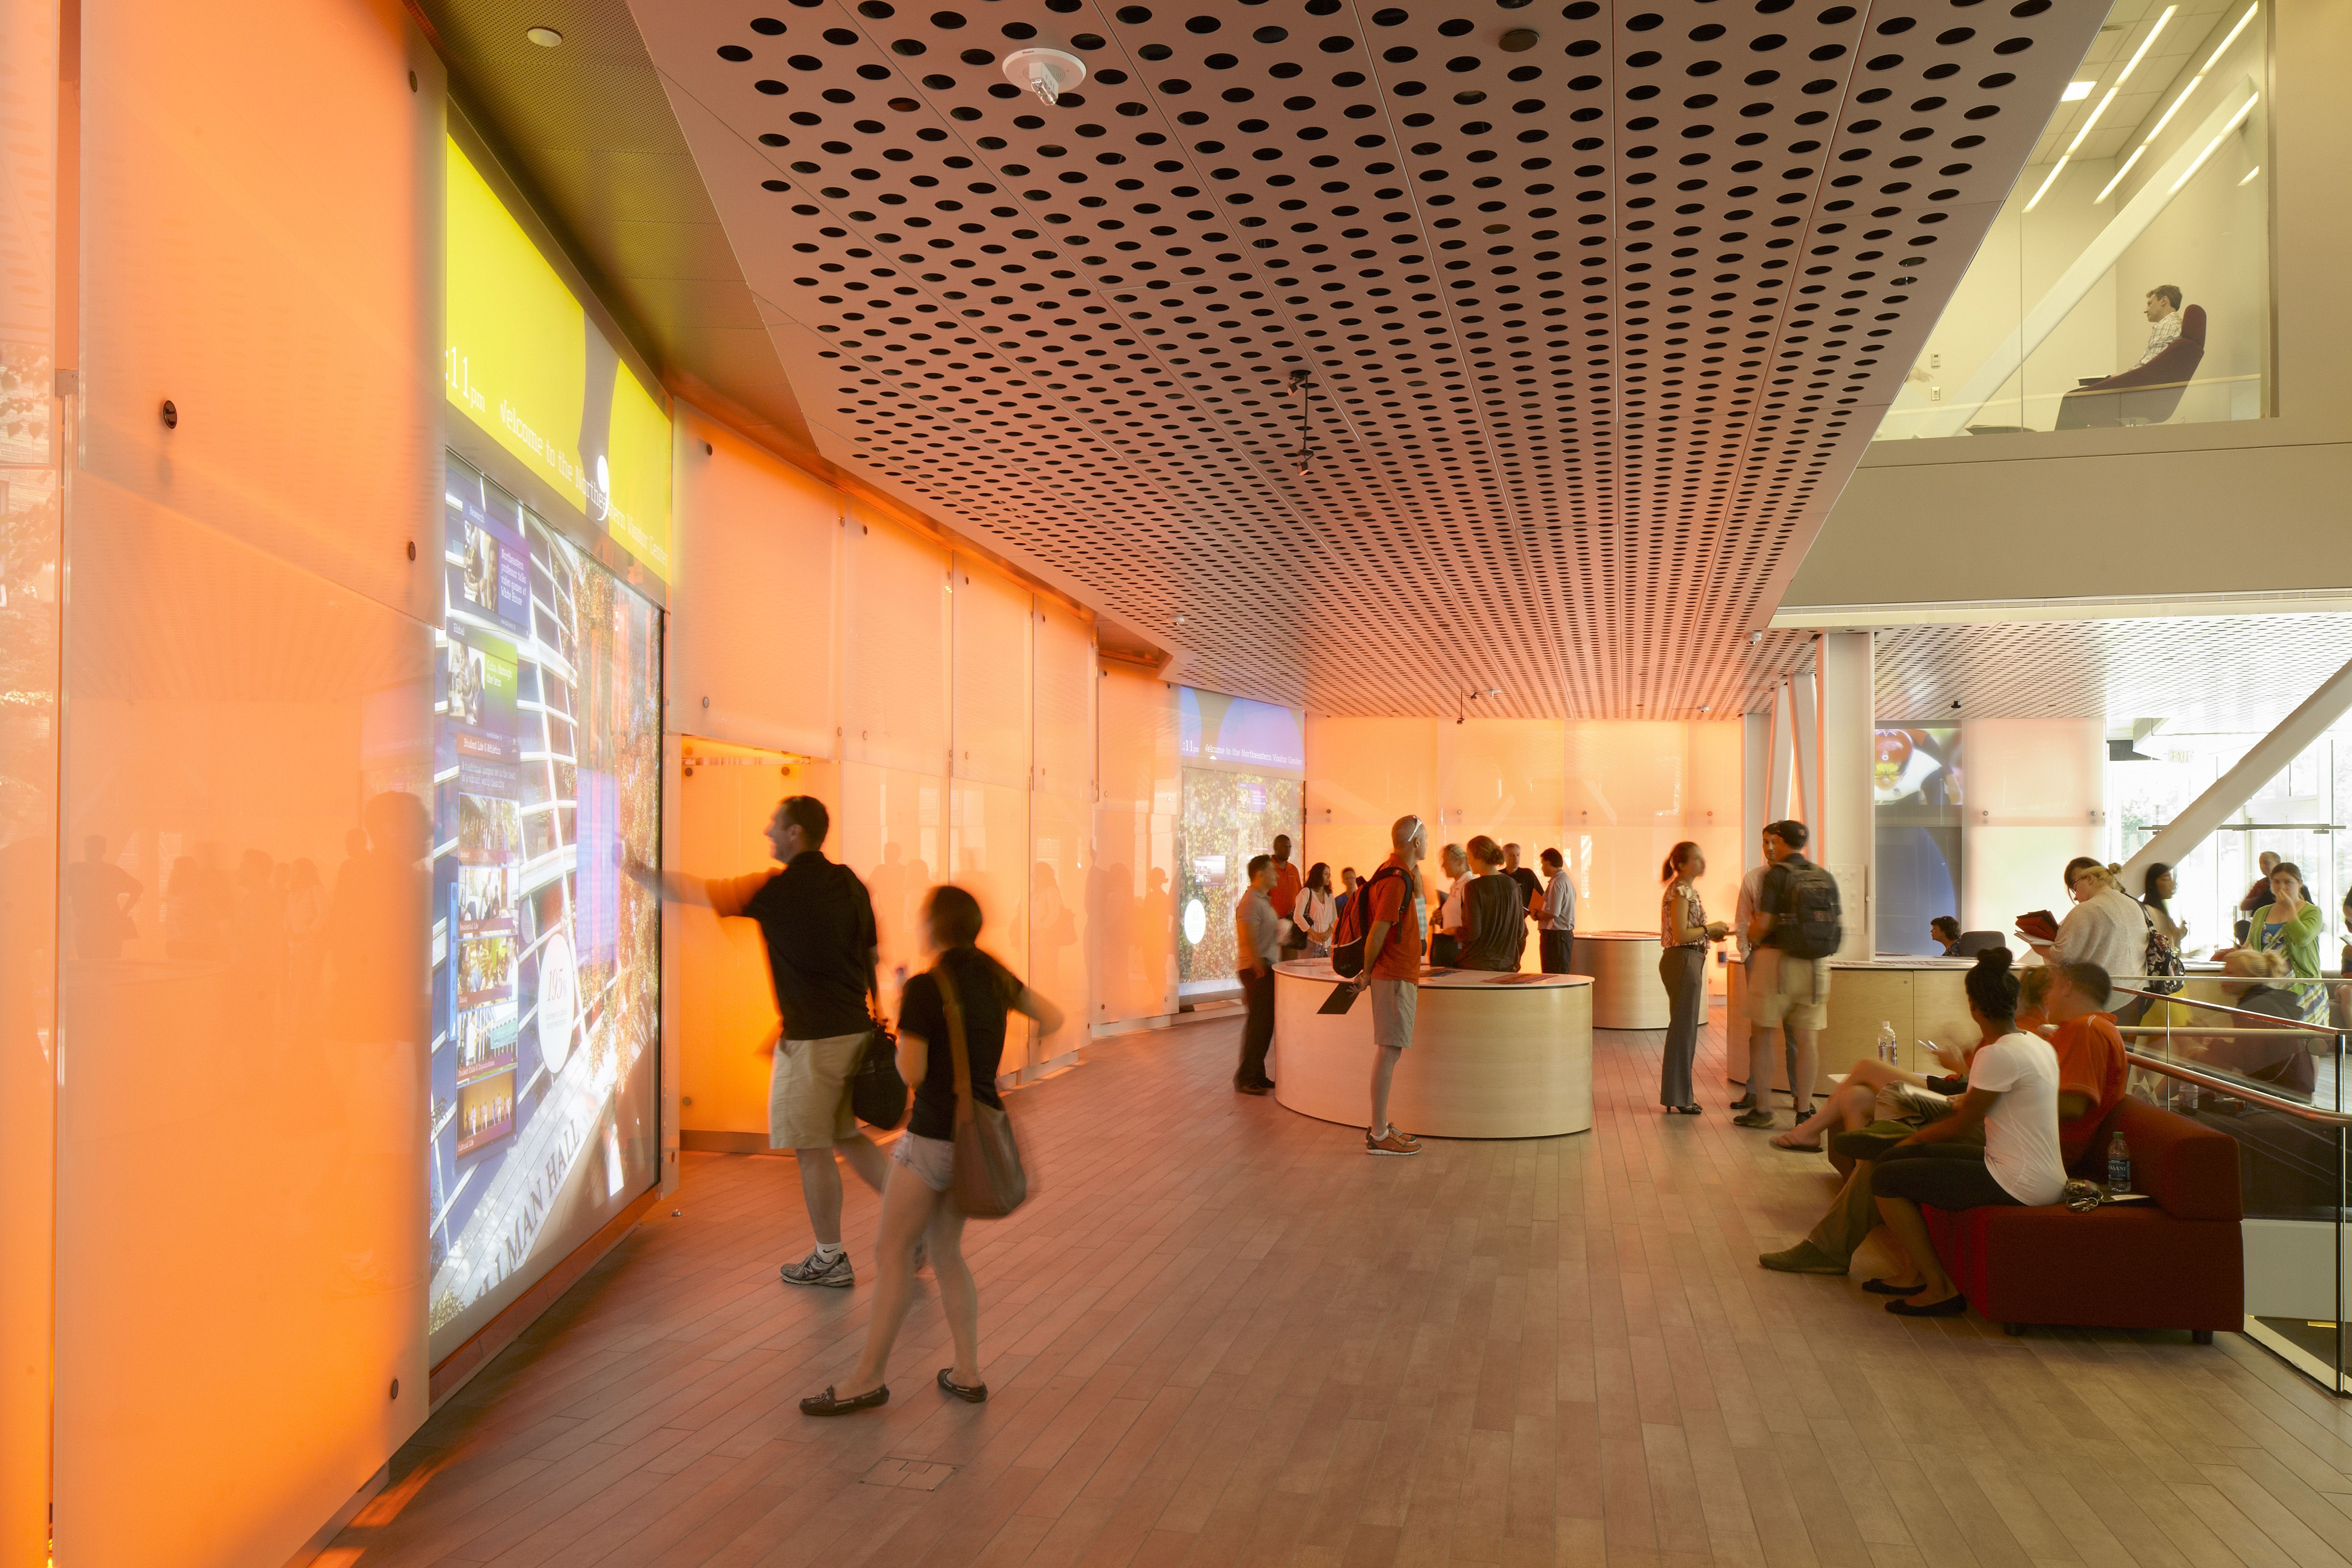 Northeastern University Visitor Center Boston MA Architect William Rawn Associates Architects Interior Lighting DesignDesign